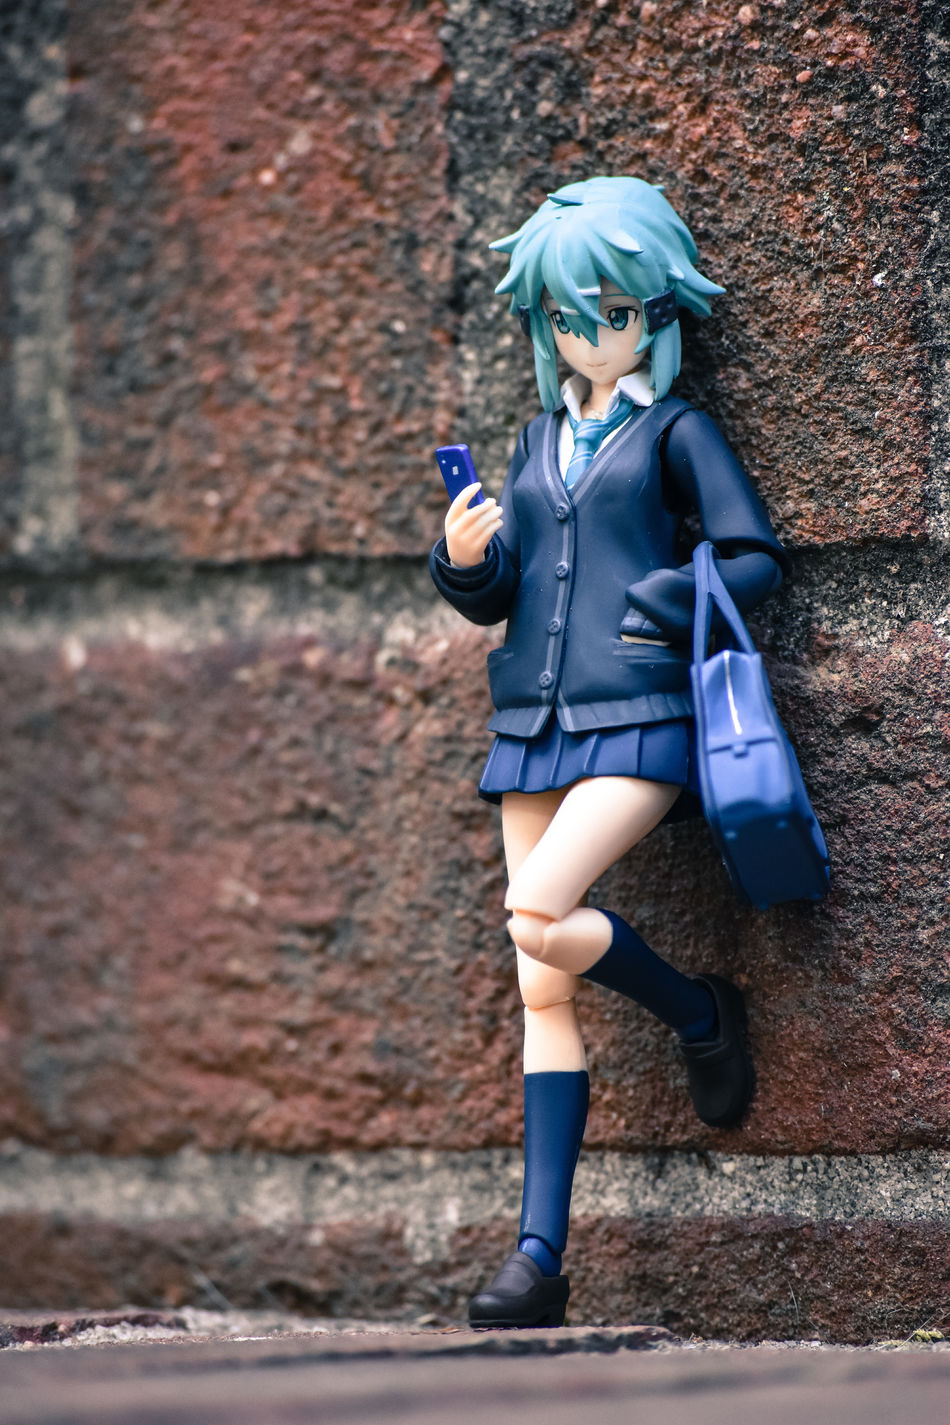 In my, in my, in my iLife, in my iWorld, on my iPhone, with my iGirl. Just one bite to understand, even Eve couldn't live without the iPlan🎶 Toys SwordArtOnline Toyphotography Toy Photography Sinon Toycommunity Anime Toysaremydrug Sao Anarchyalliance Swordartonline2 Photography